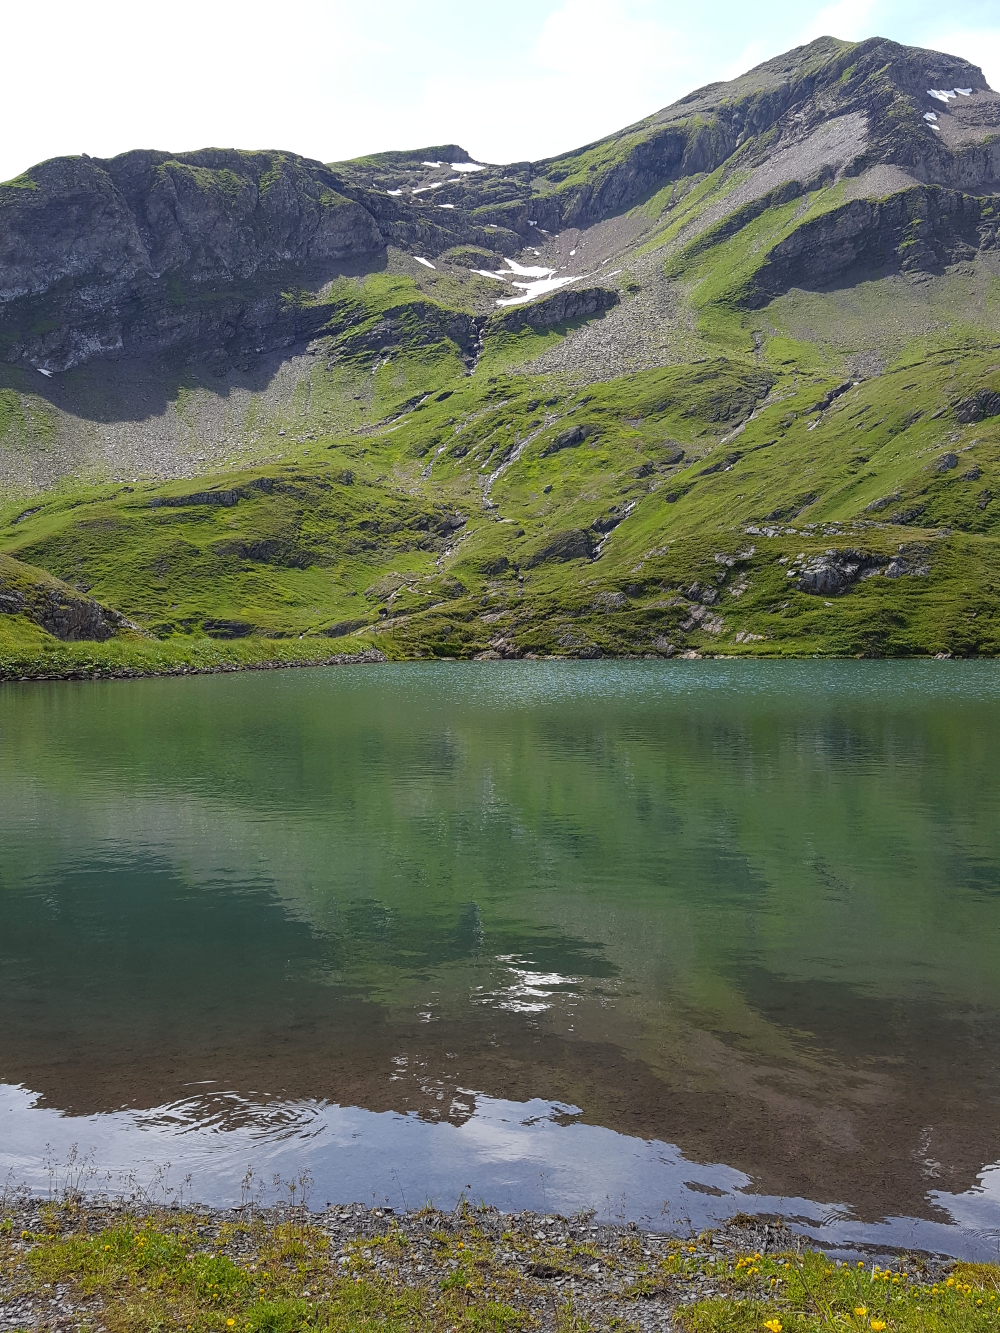 Bachalpsee at Grindelwald-First in the Bernese Oberland